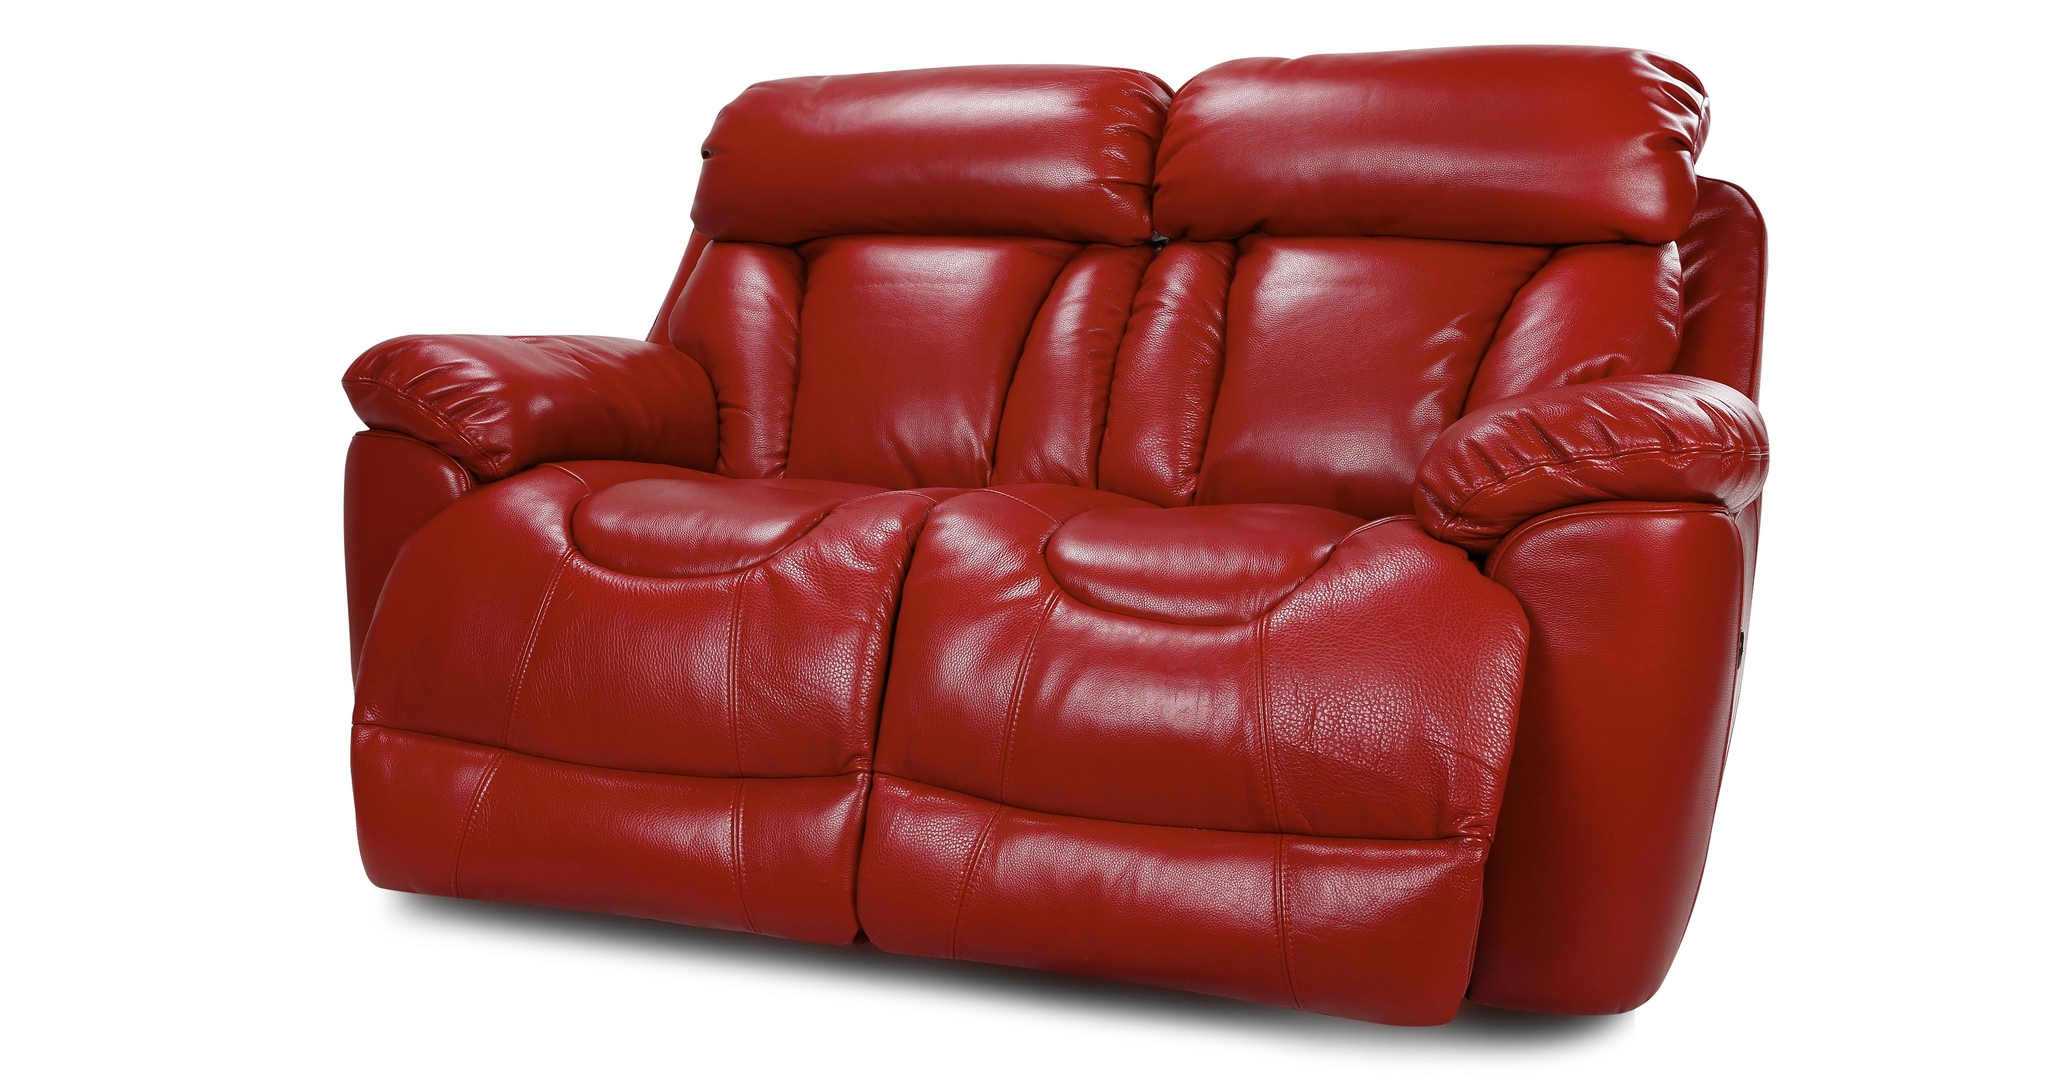 Dfs Supreme Settee 2 Seater Red Leather Power Recliner Sofa